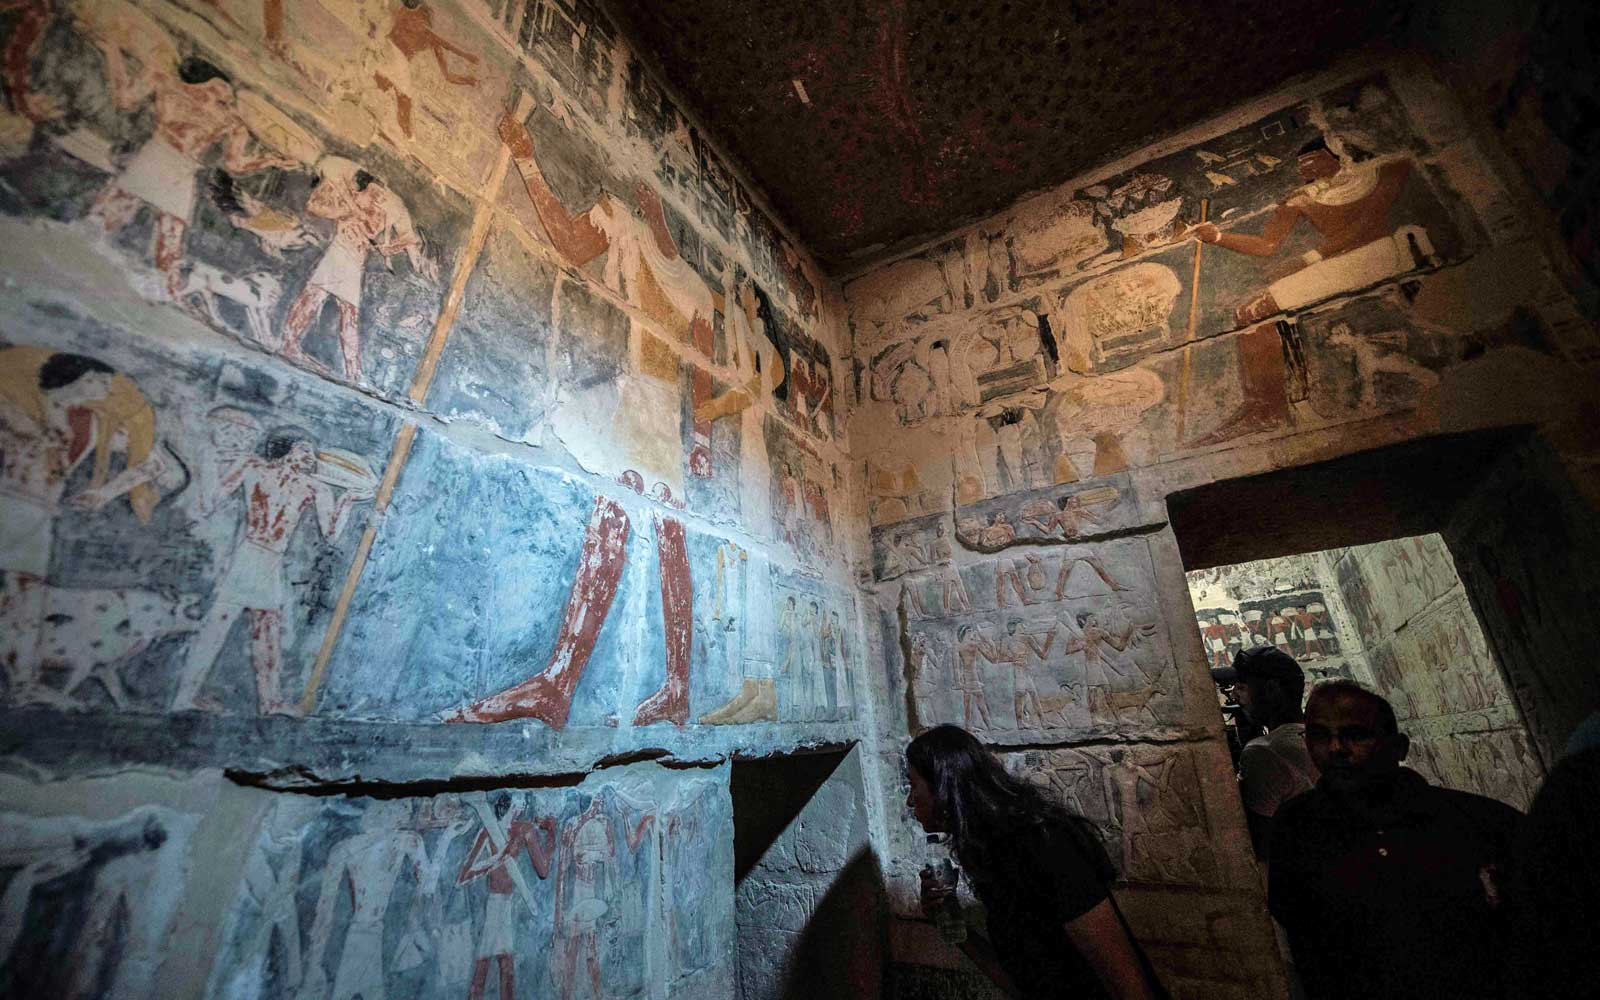 Researchers Found This Colorful 4,000-year-old Tomb Nearly 80 Years Ago — Now It's Finally Open to the Public